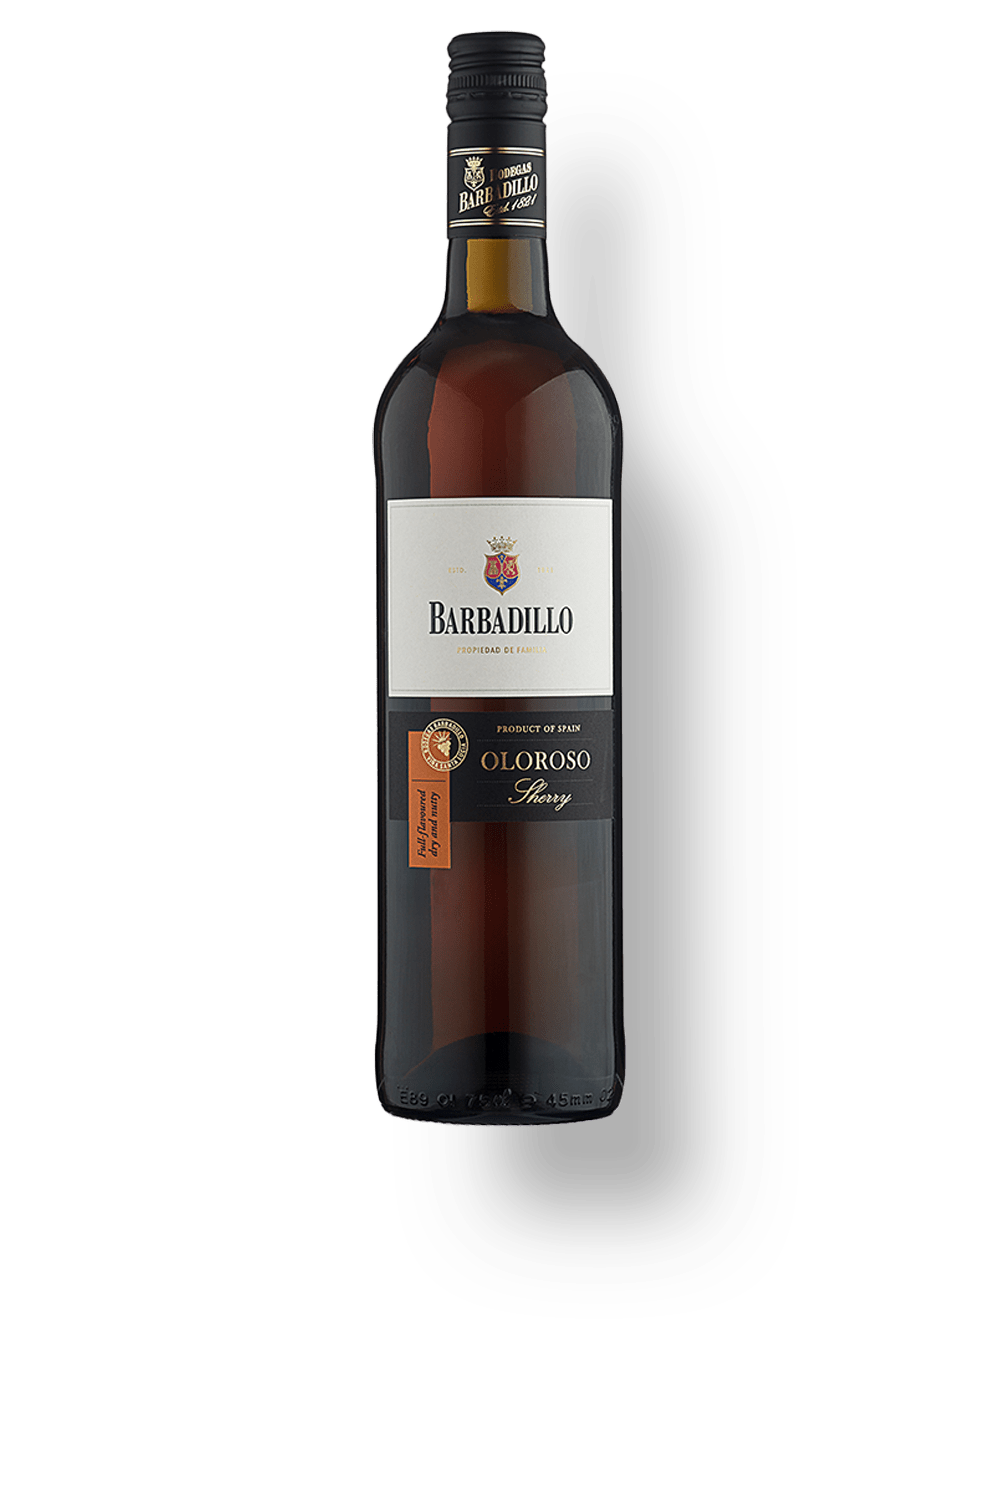 Fortificado_Barbadillo_Oloroso_Sherry